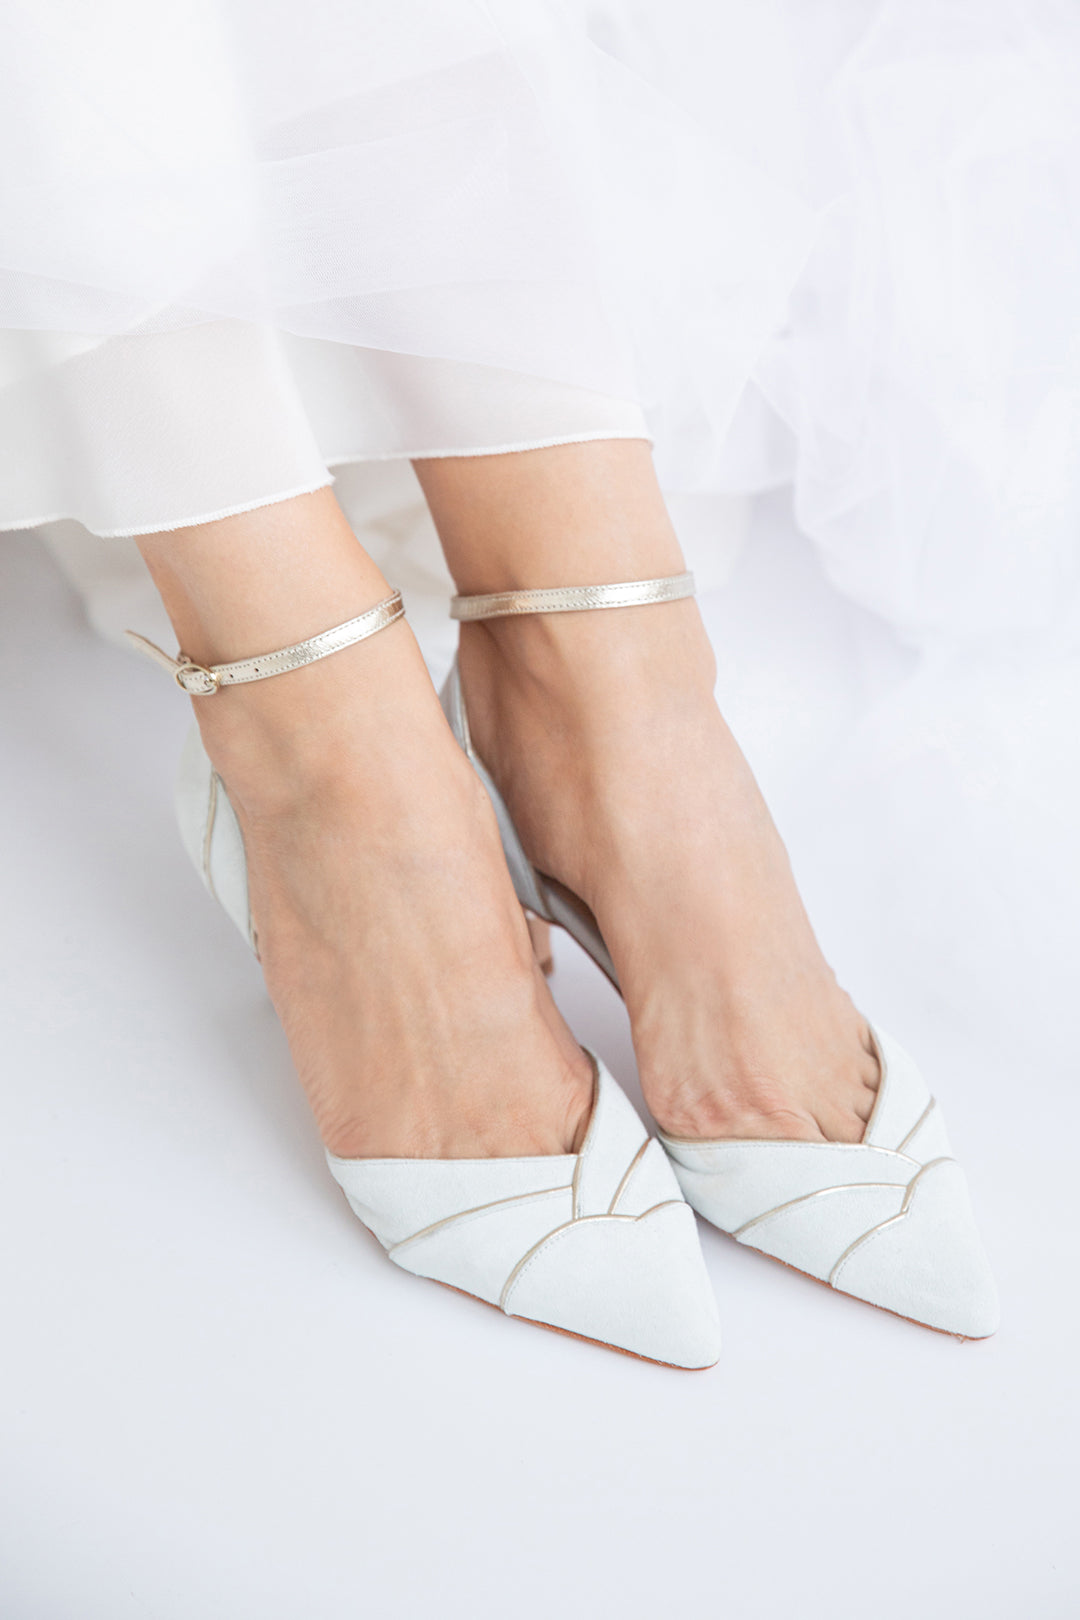 Rachel Simpson Clementine ivory pointed wedding shoes